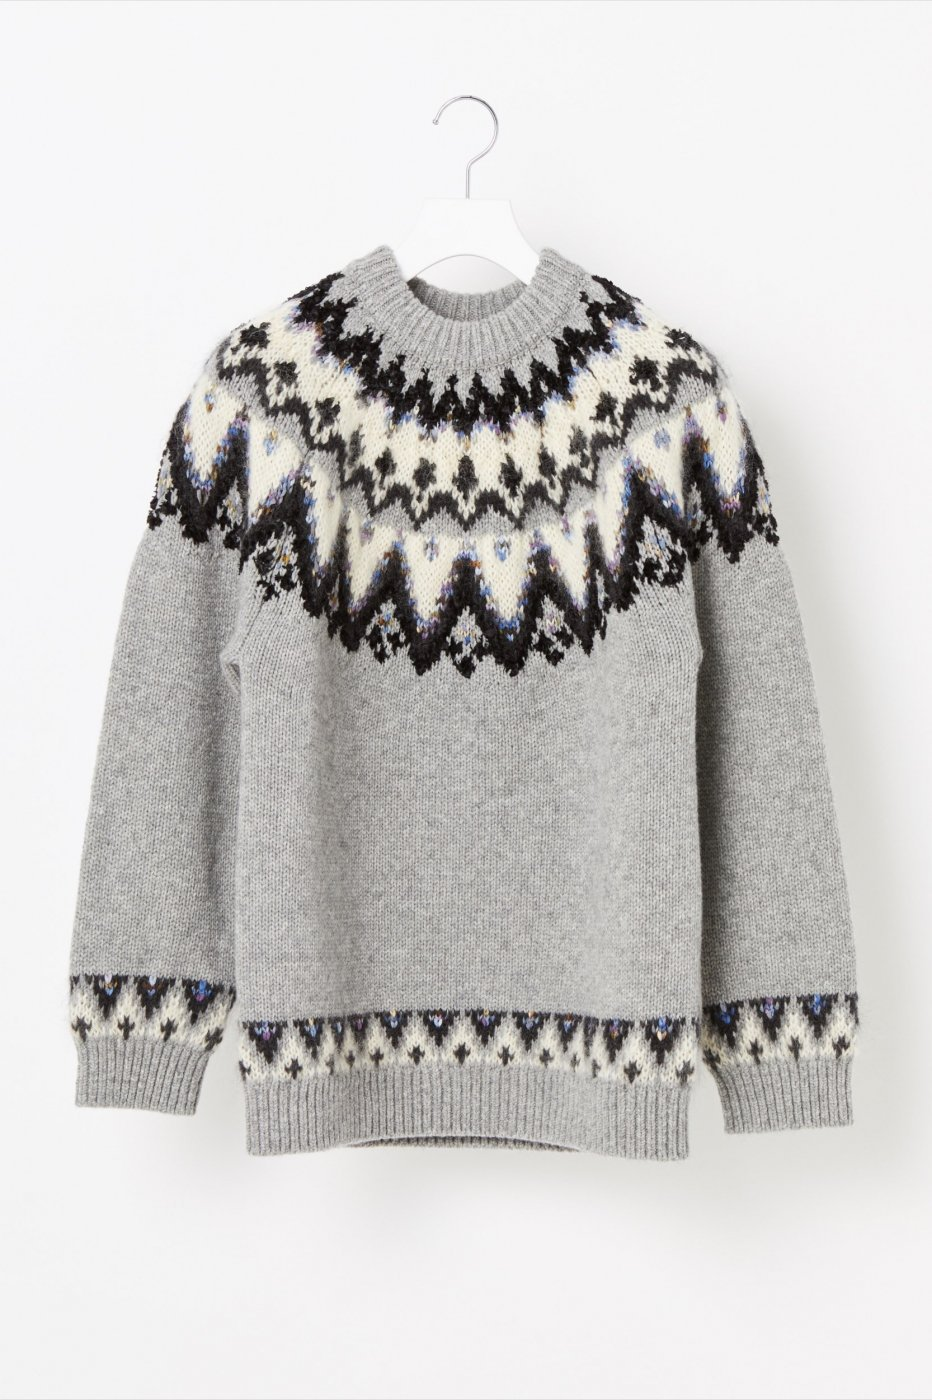 <img class='new_mark_img1' src='https://img.shop-pro.jp/img/new/icons8.gif' style='border:none;display:inline;margin:0px;padding:0px;width:auto;' />COOHEM コーヘン-NORDIC KNIT SWEATER-GREY